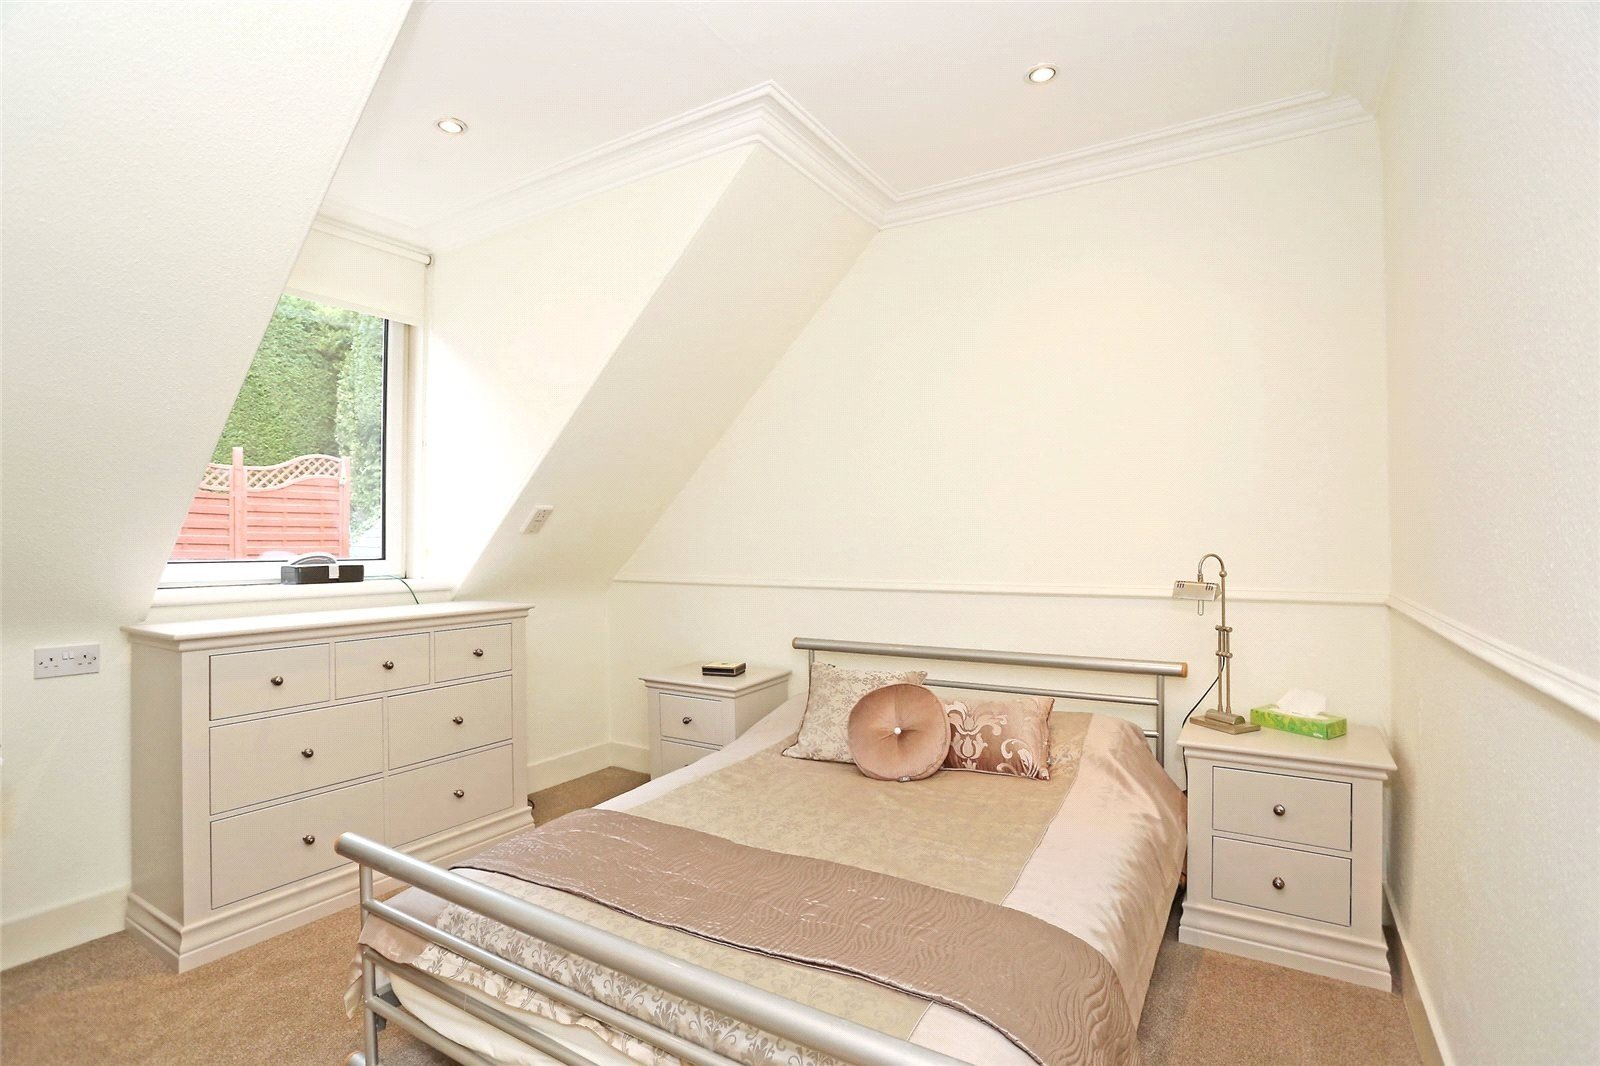 Guest House in the heart of Banchory with Airbnb Opportunity - Image 5